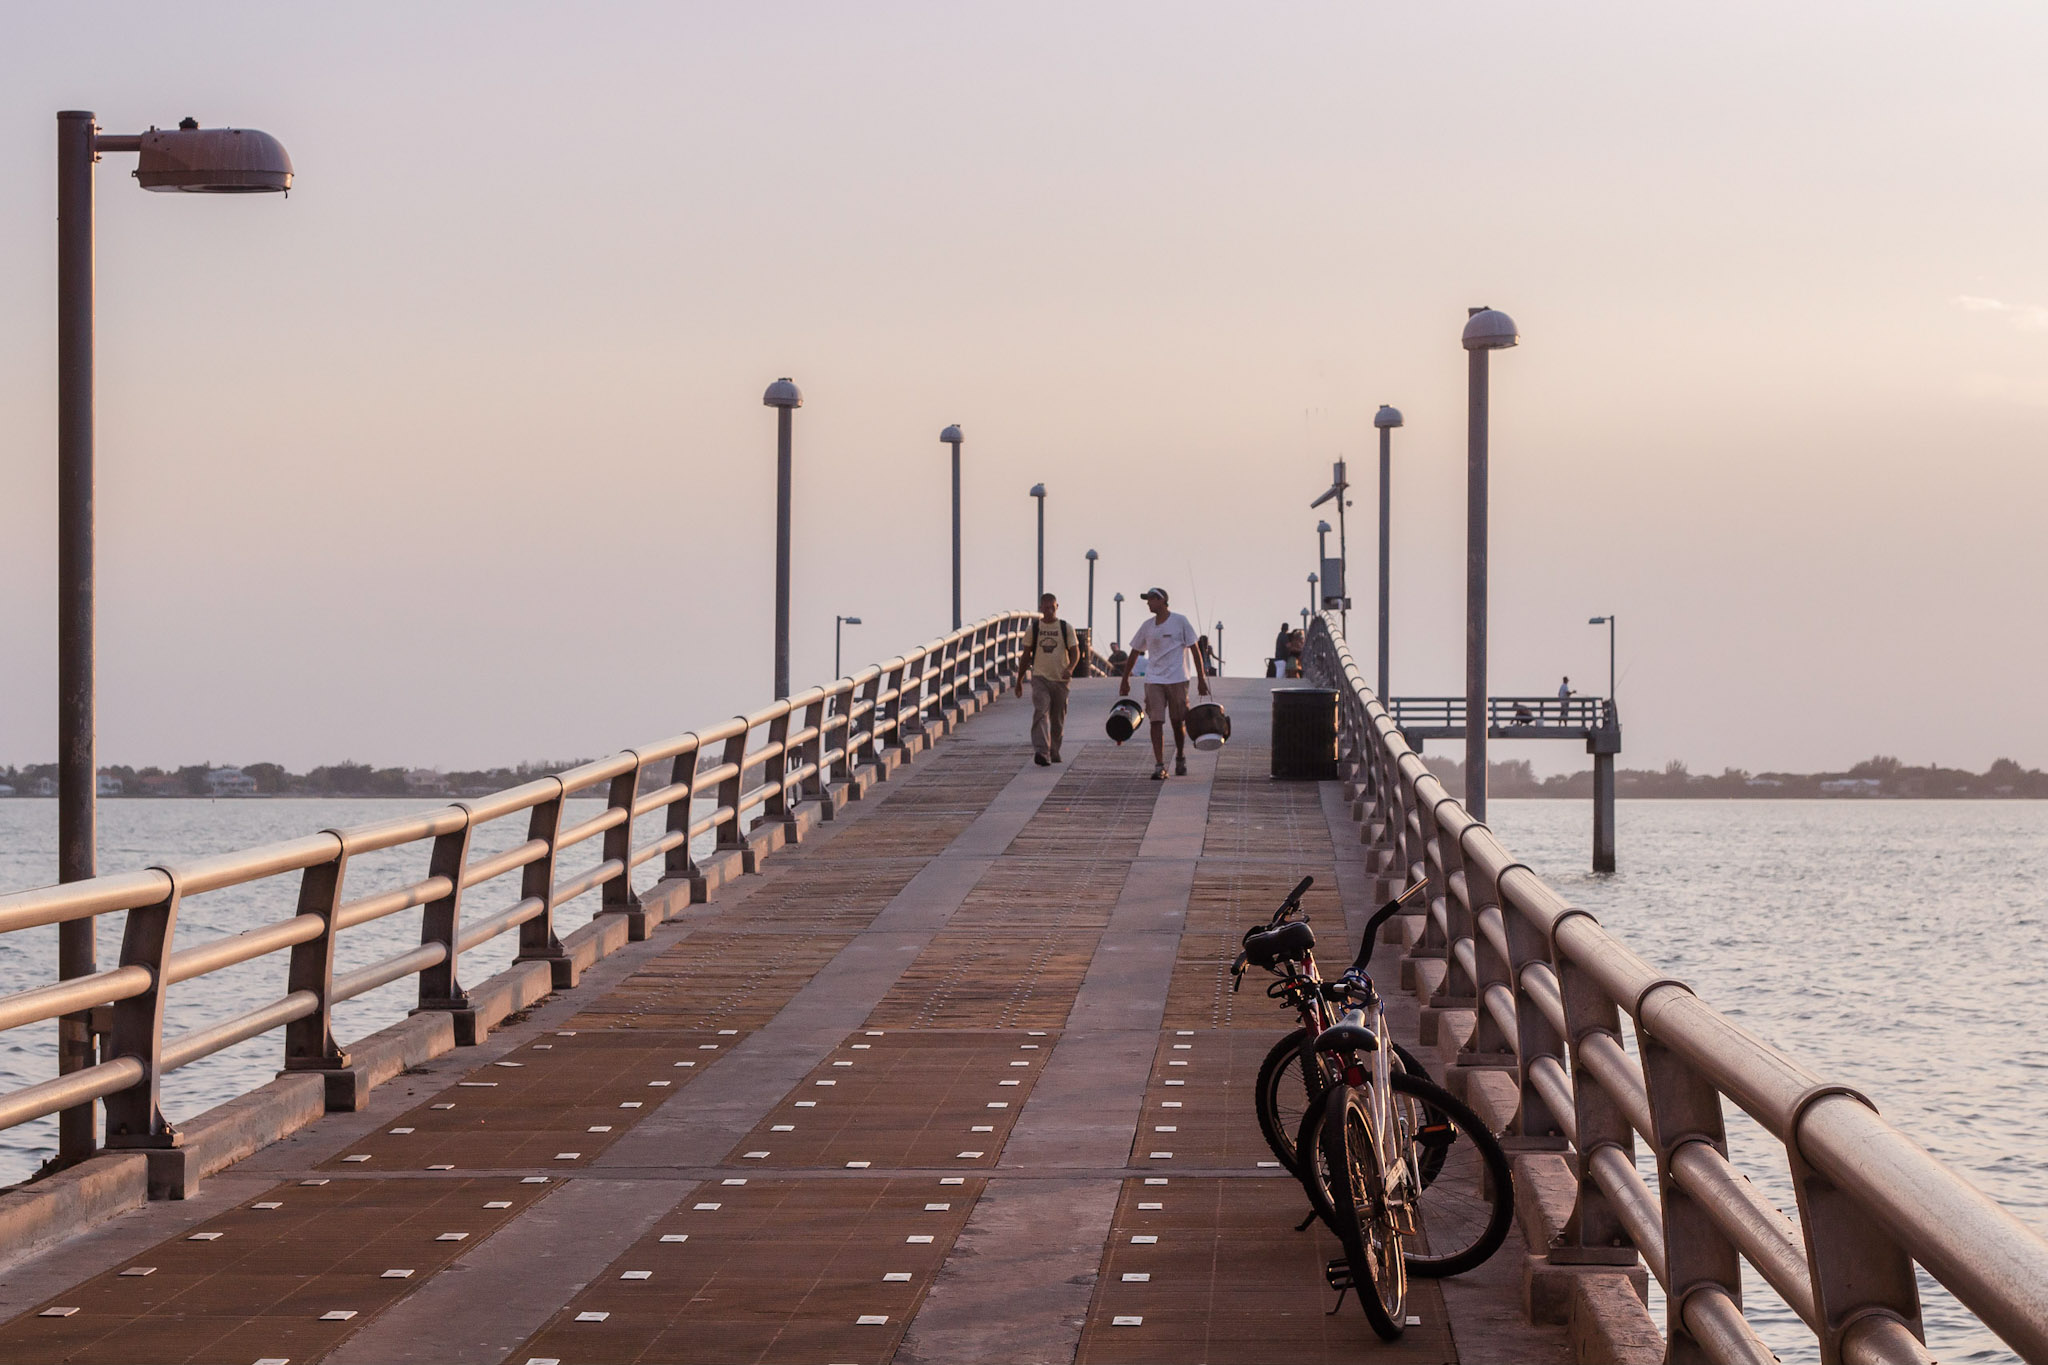 Fishermen walking down a long fishing pier.